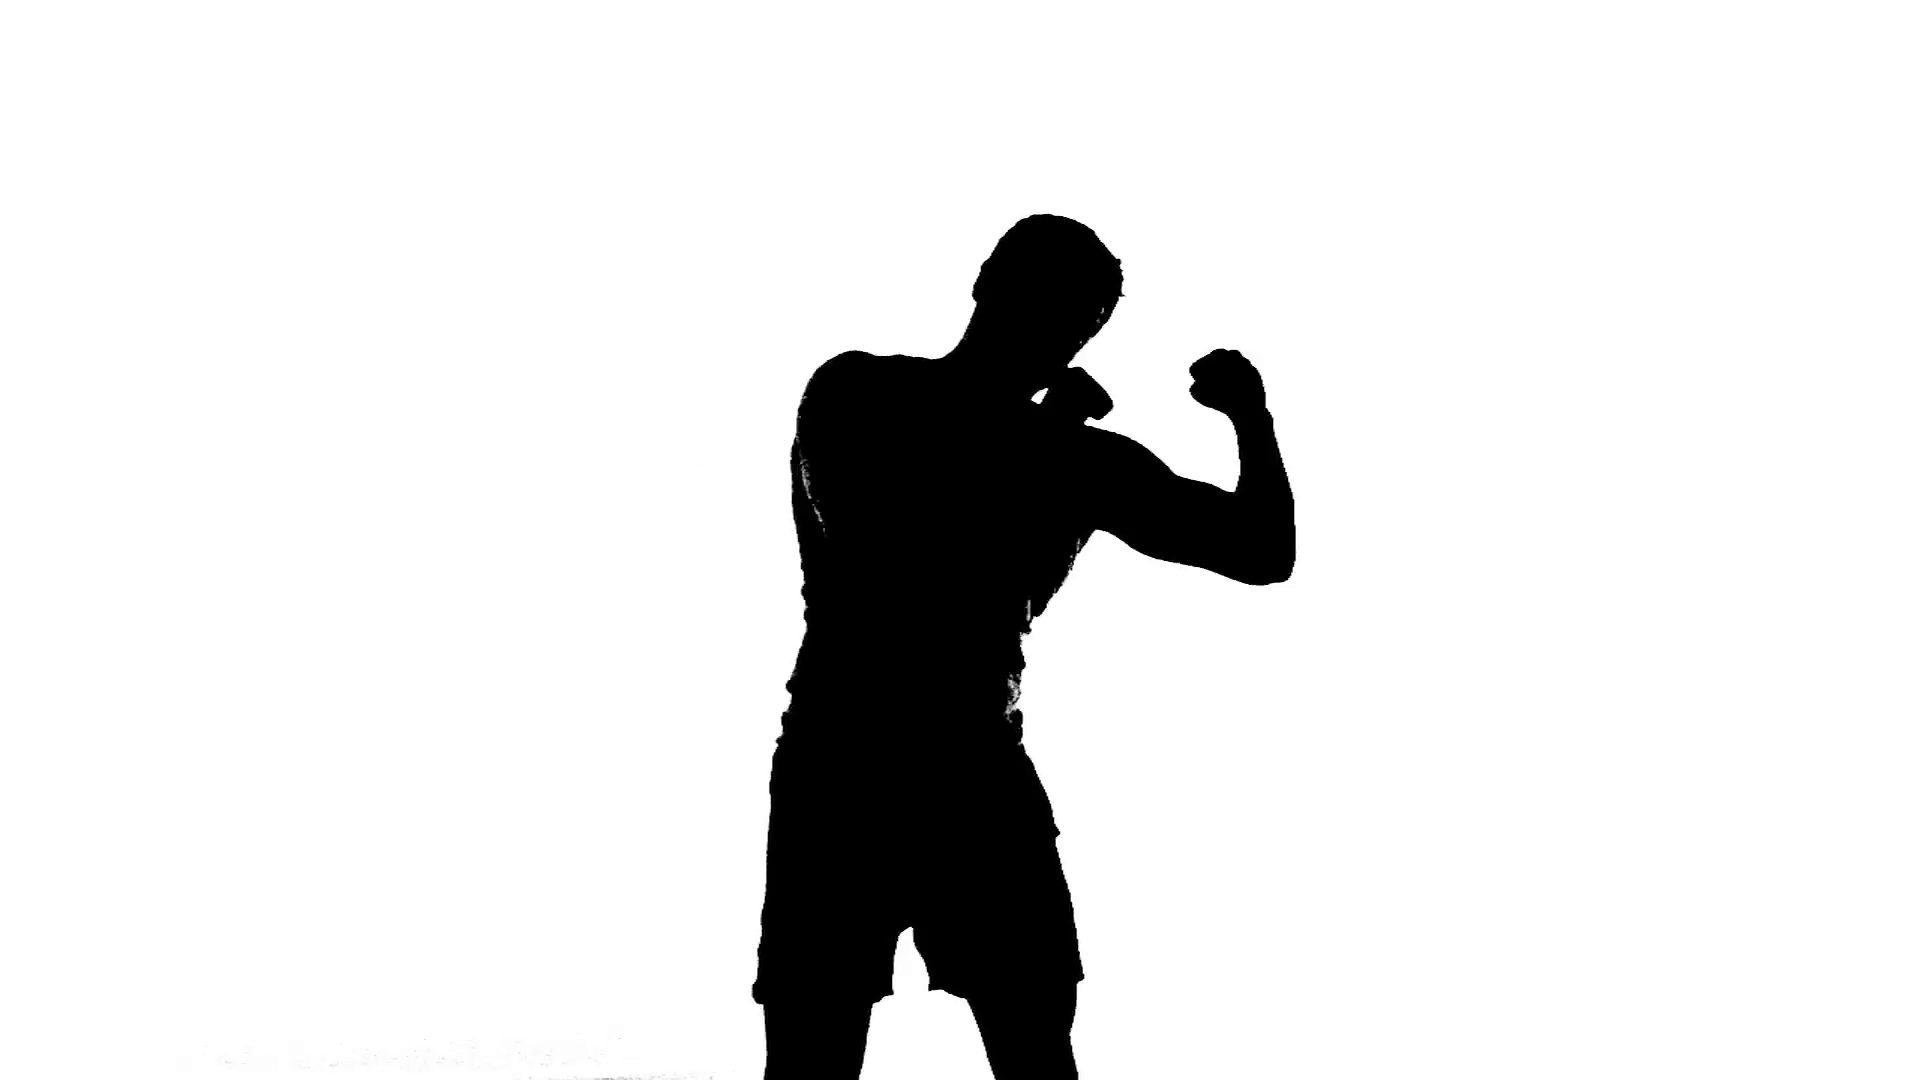 1920x1080 Boxer Boxing Silhouette Black And White Shadowboxing Throwing